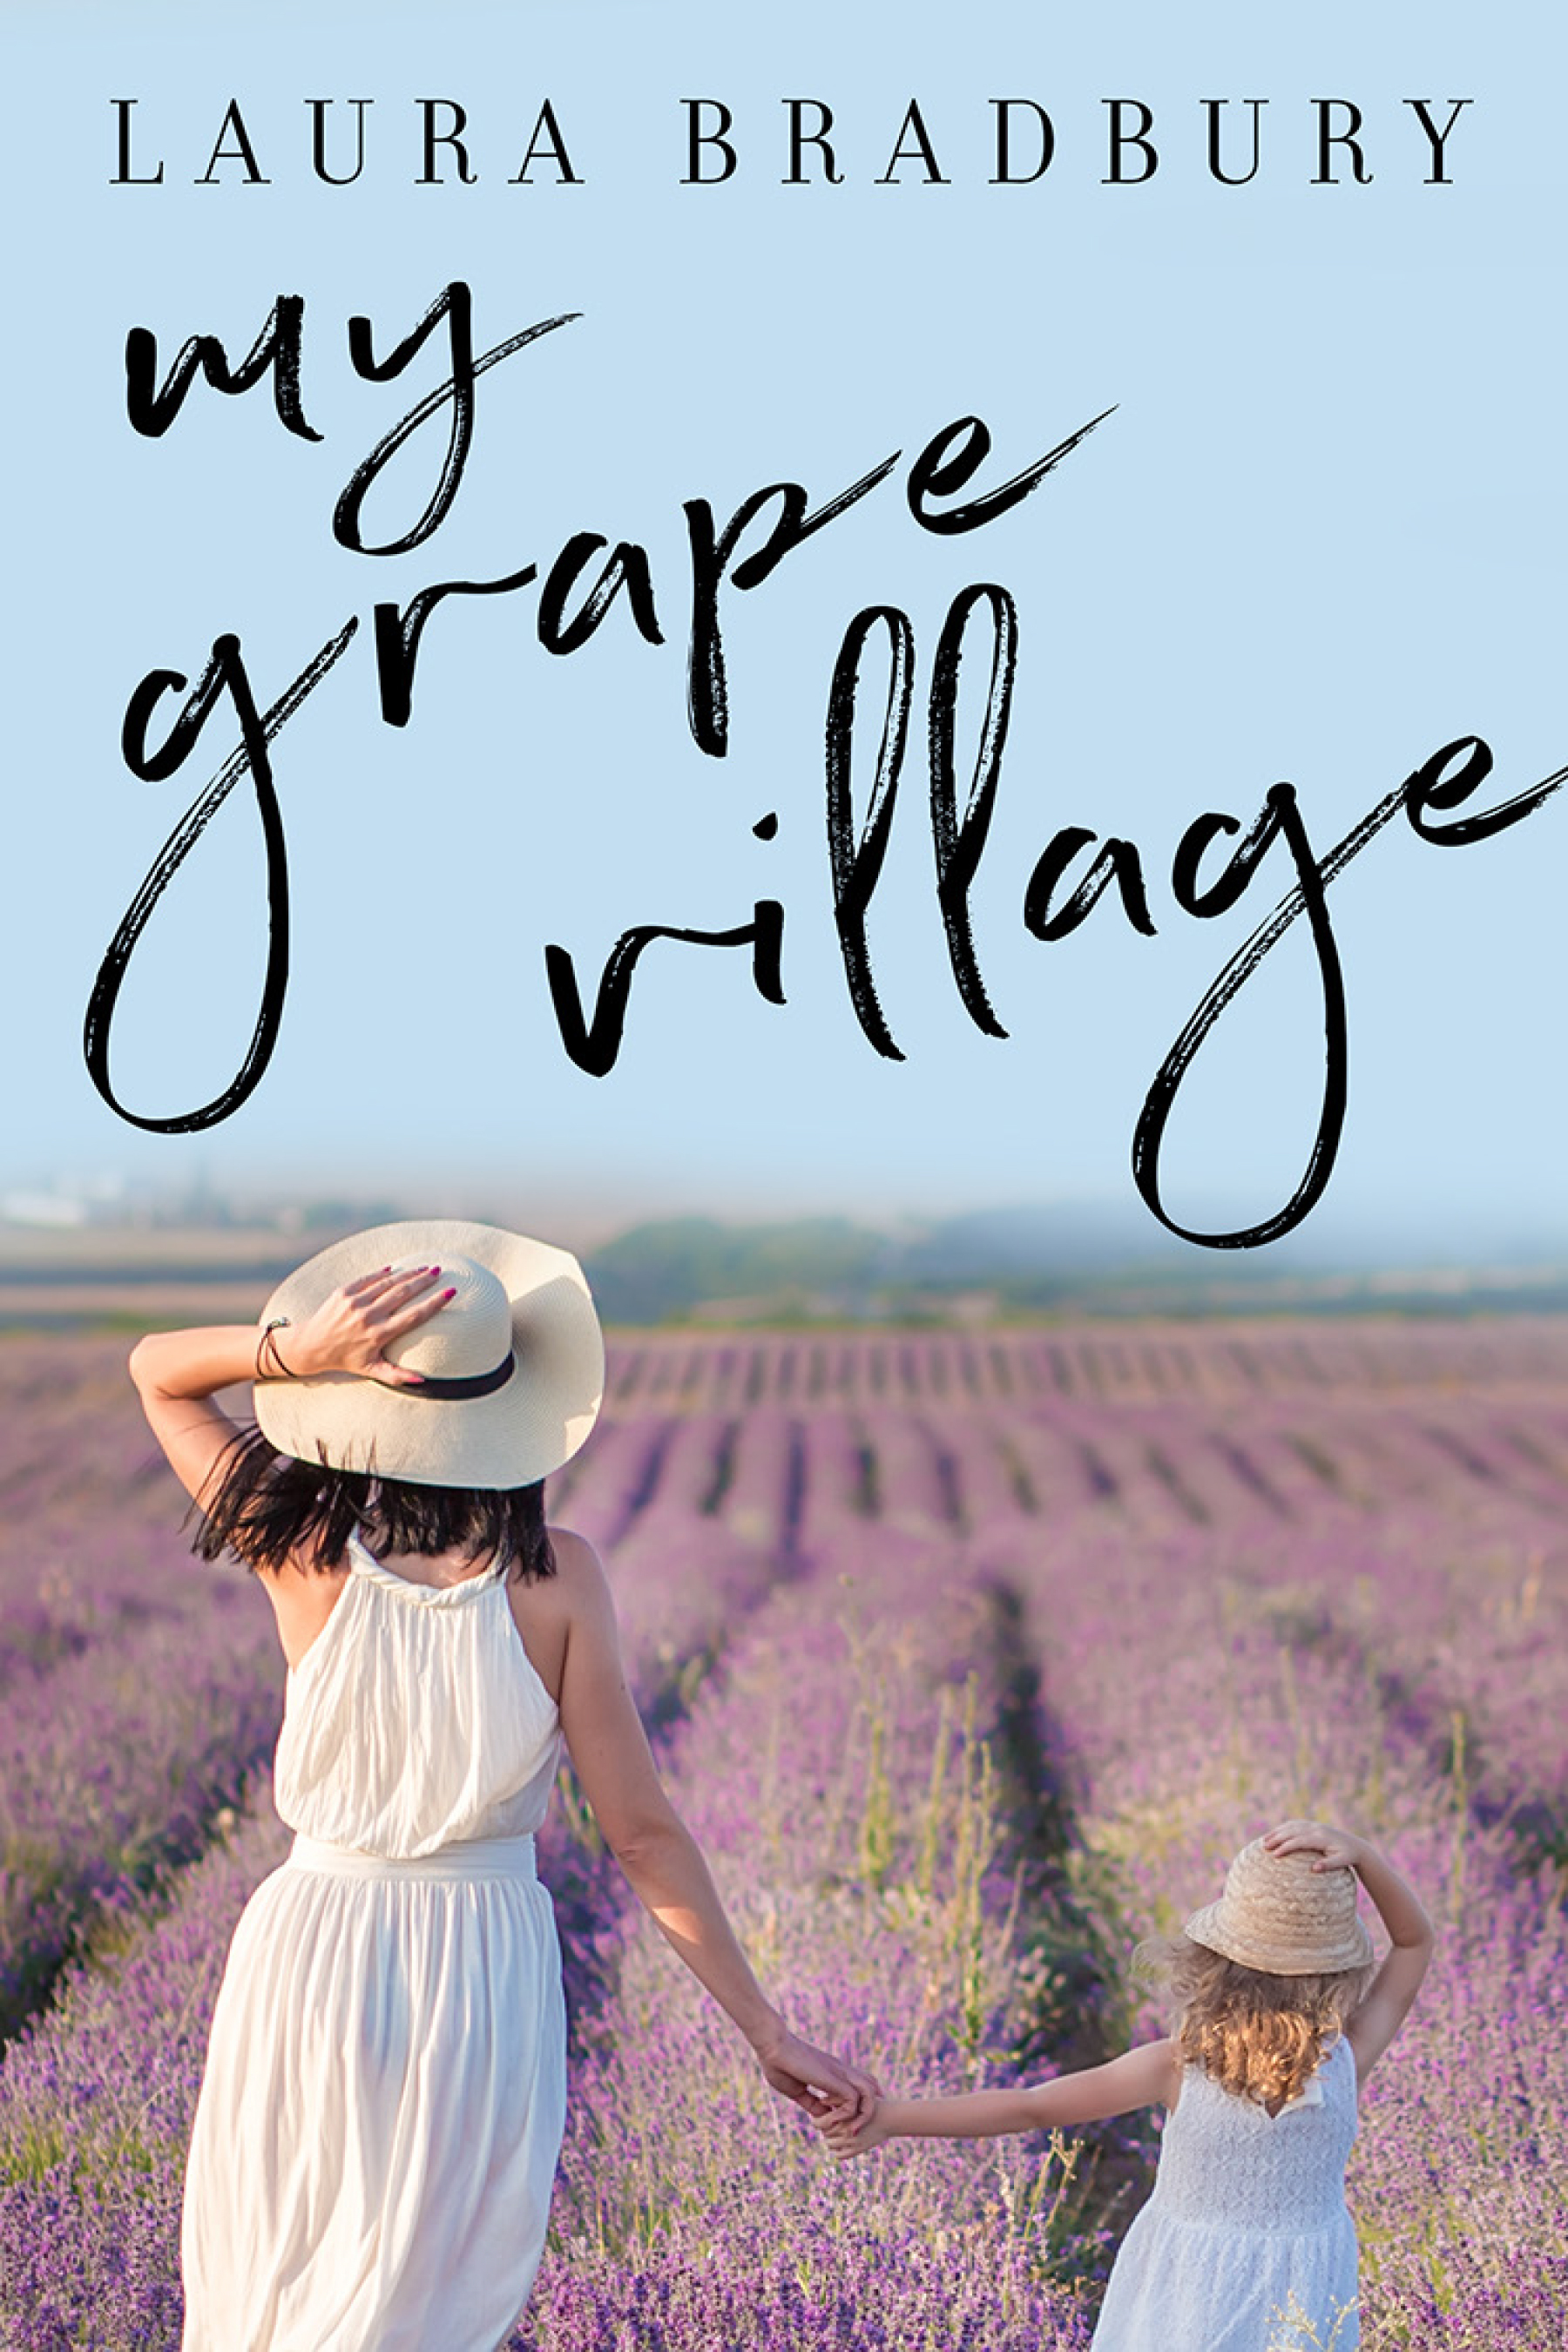 Uncorking La Belle Vie in France with my family.